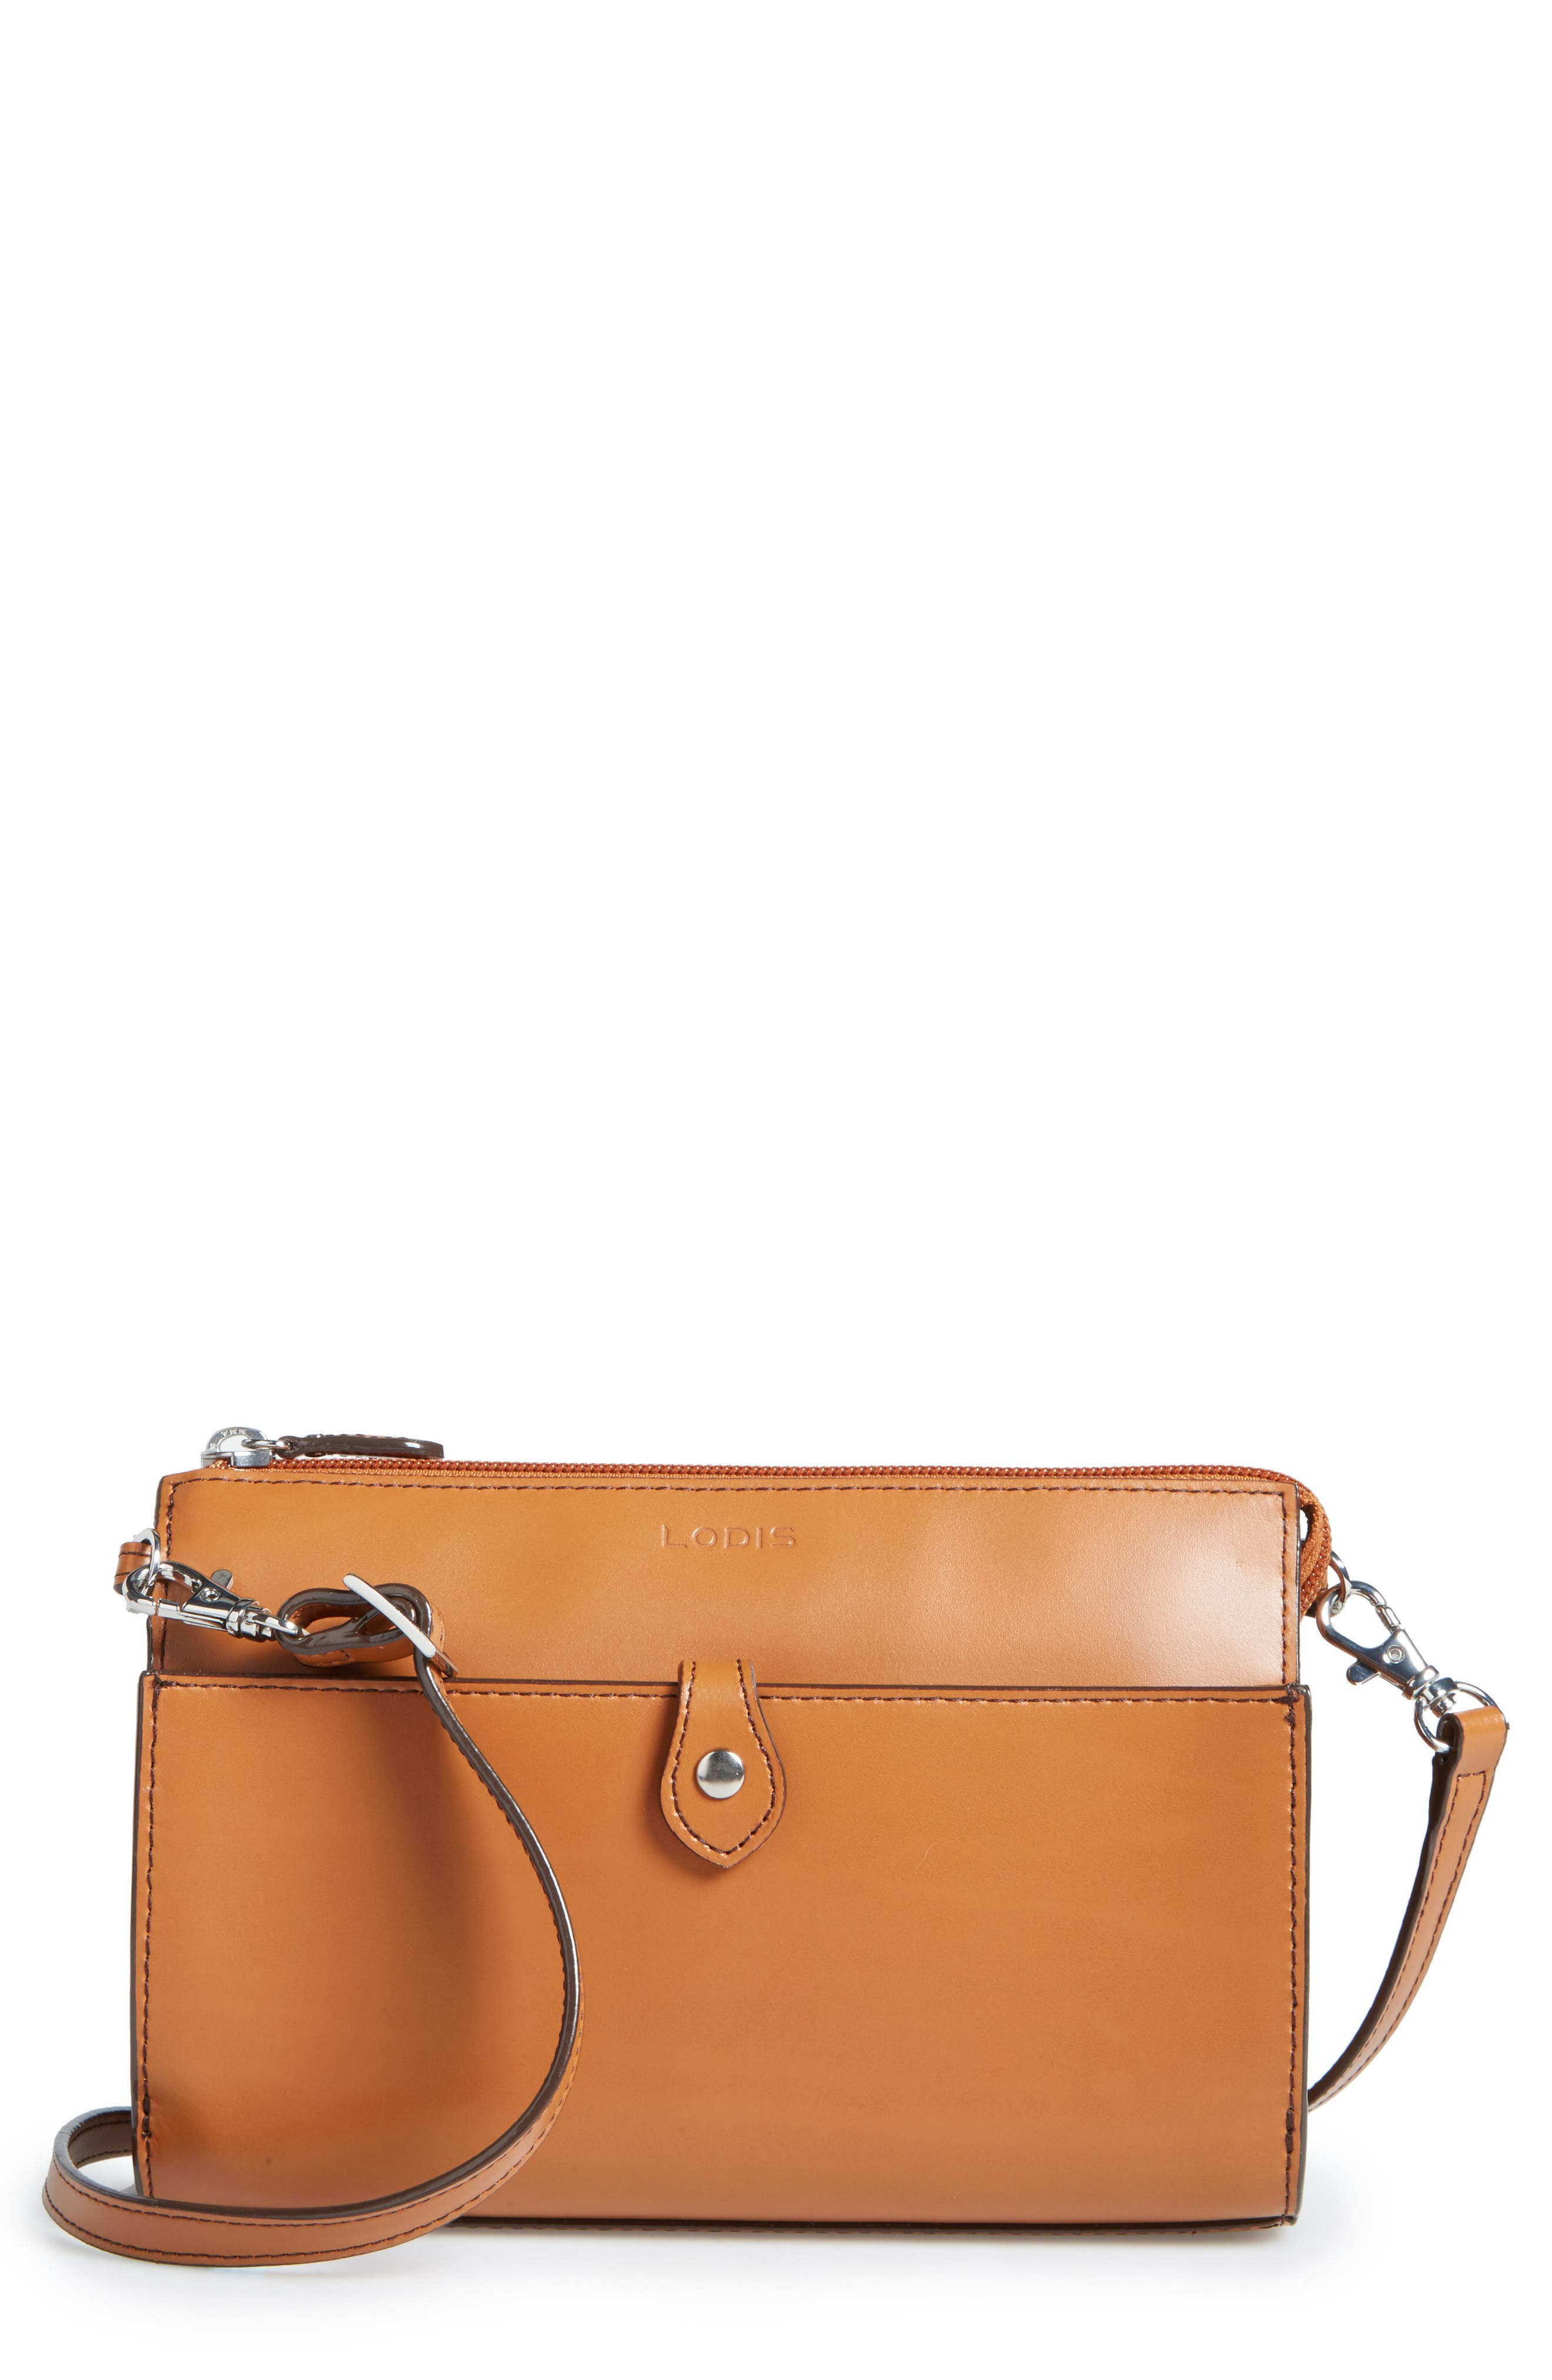 Audrey Under Lock & Key Vicky Convertible Leather Crossbody Bag,                             Main thumbnail 1, color,                             TOFFEE